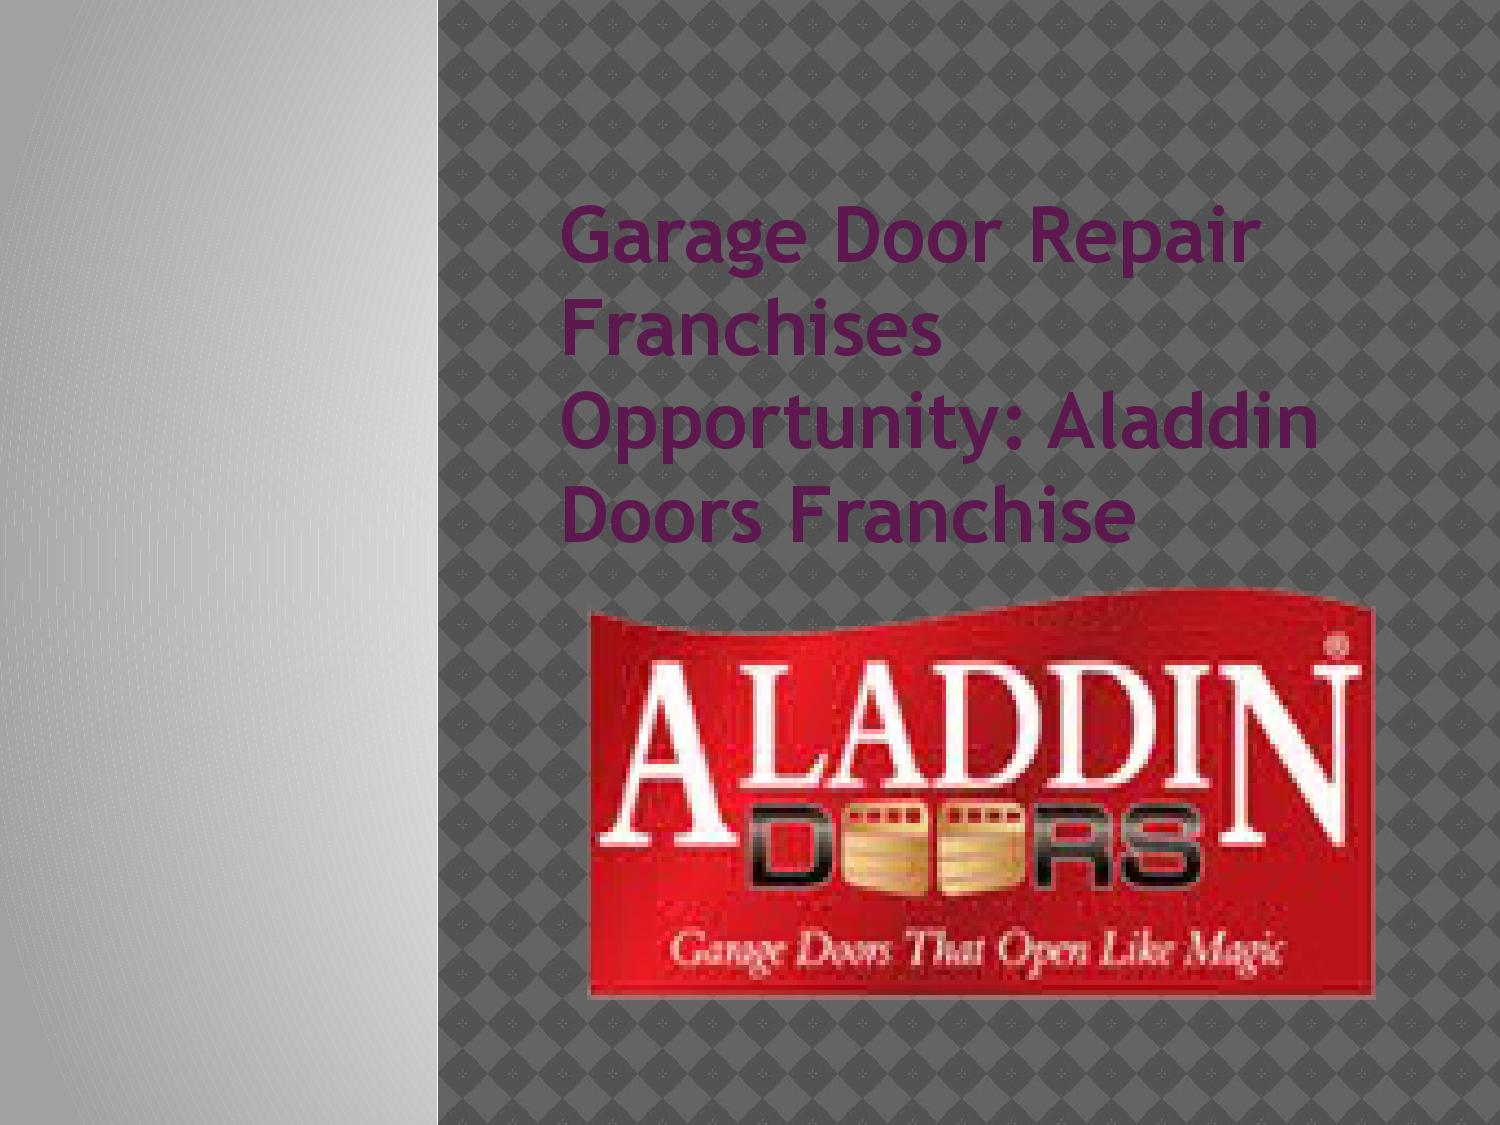 Garage Door Repair Franchises Opportunity By Scrallet Smith Issuu